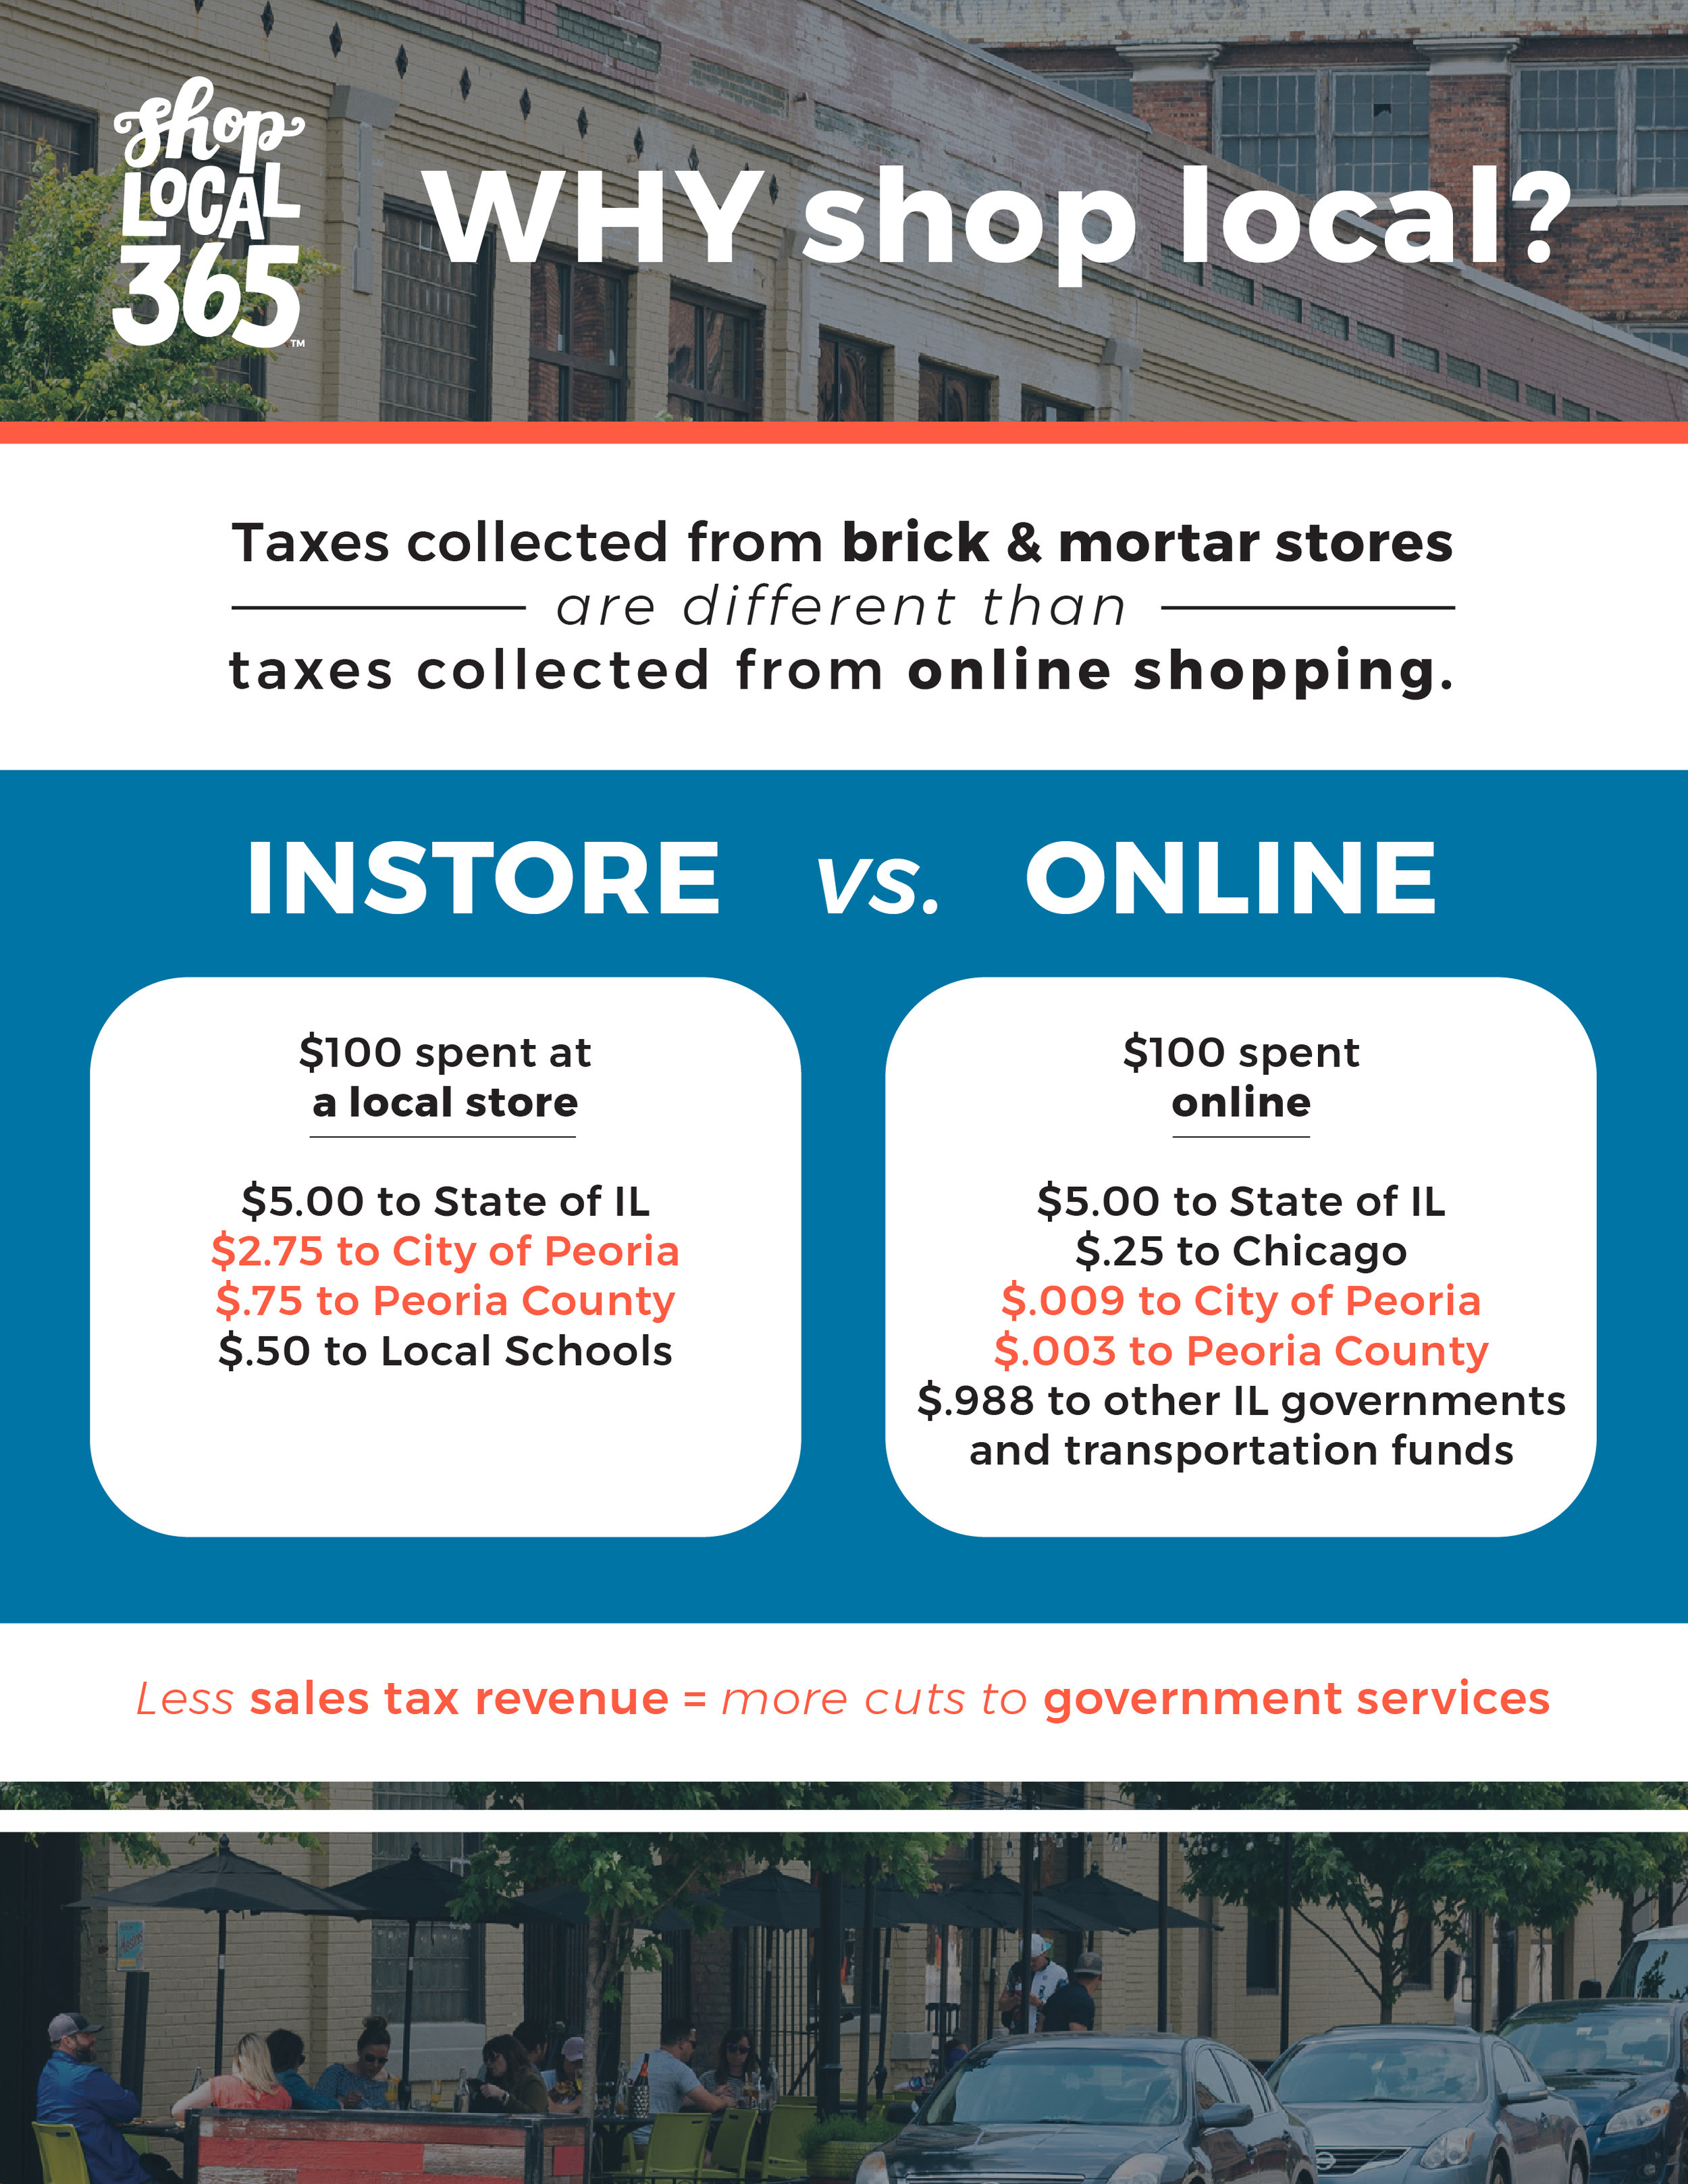 WhyShopLocal-Infographic-ShopLocal365-WEB-General.jpg